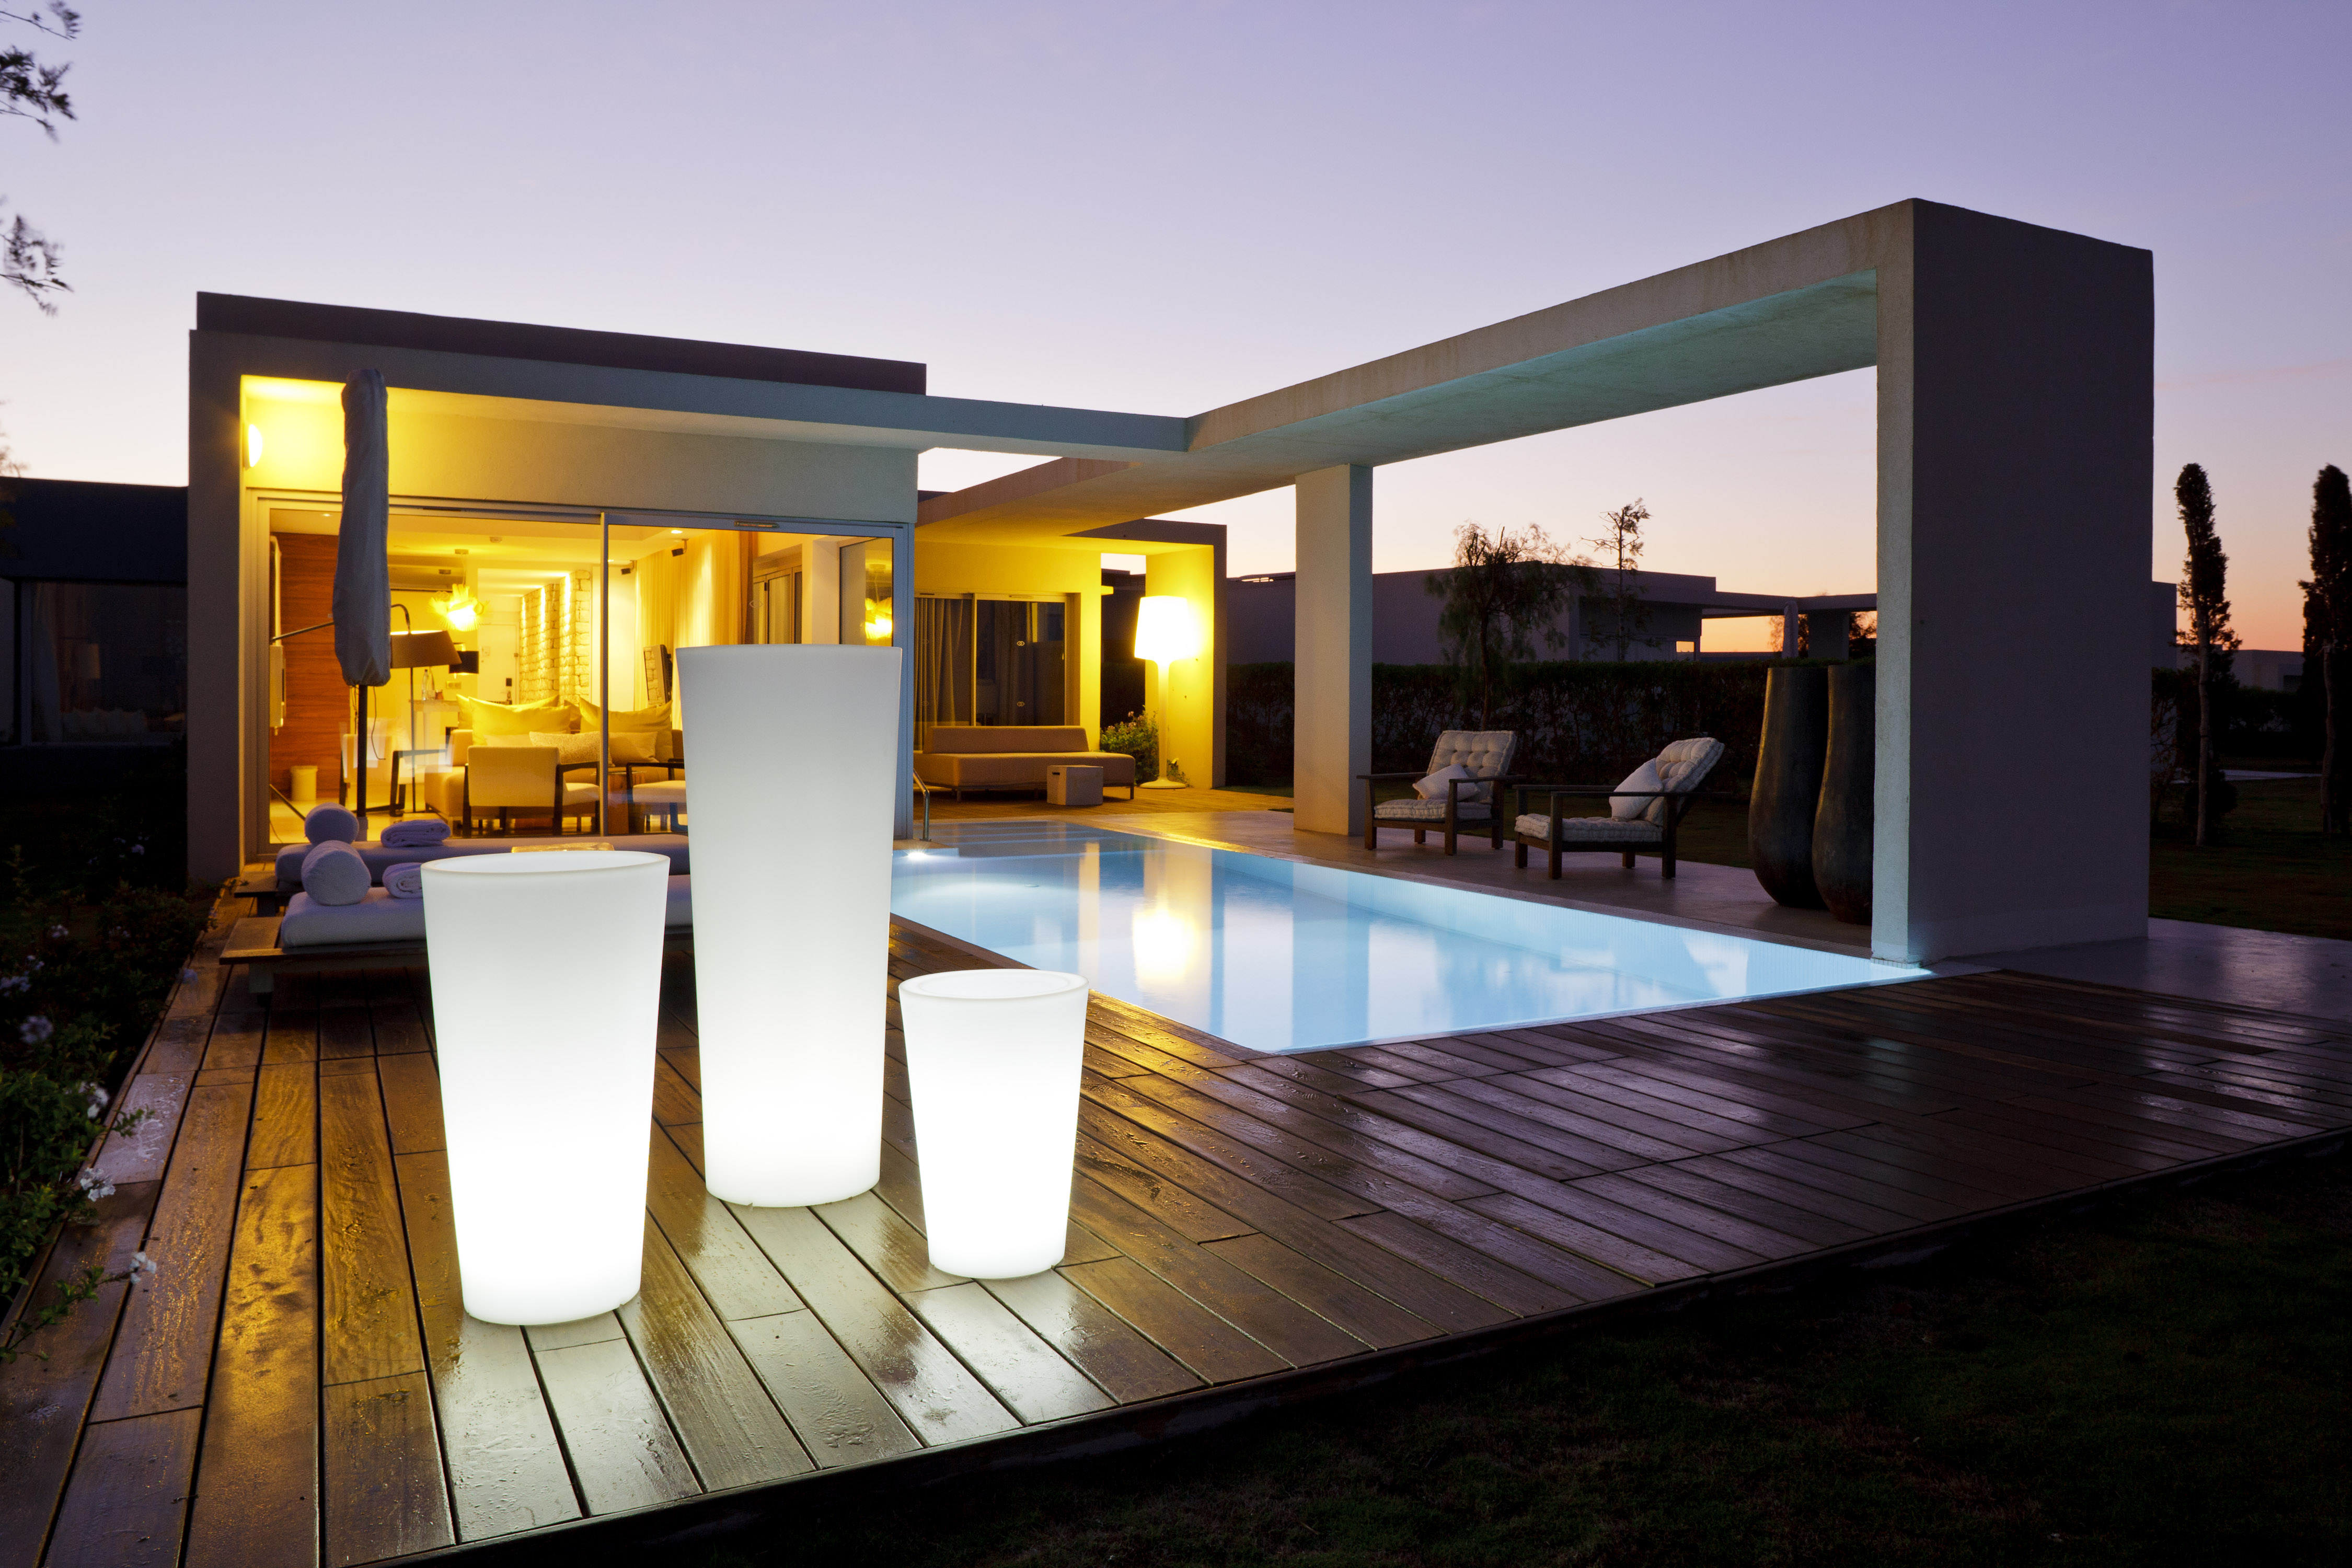 luminaire terrasse eclairage ext rieur. Black Bedroom Furniture Sets. Home Design Ideas